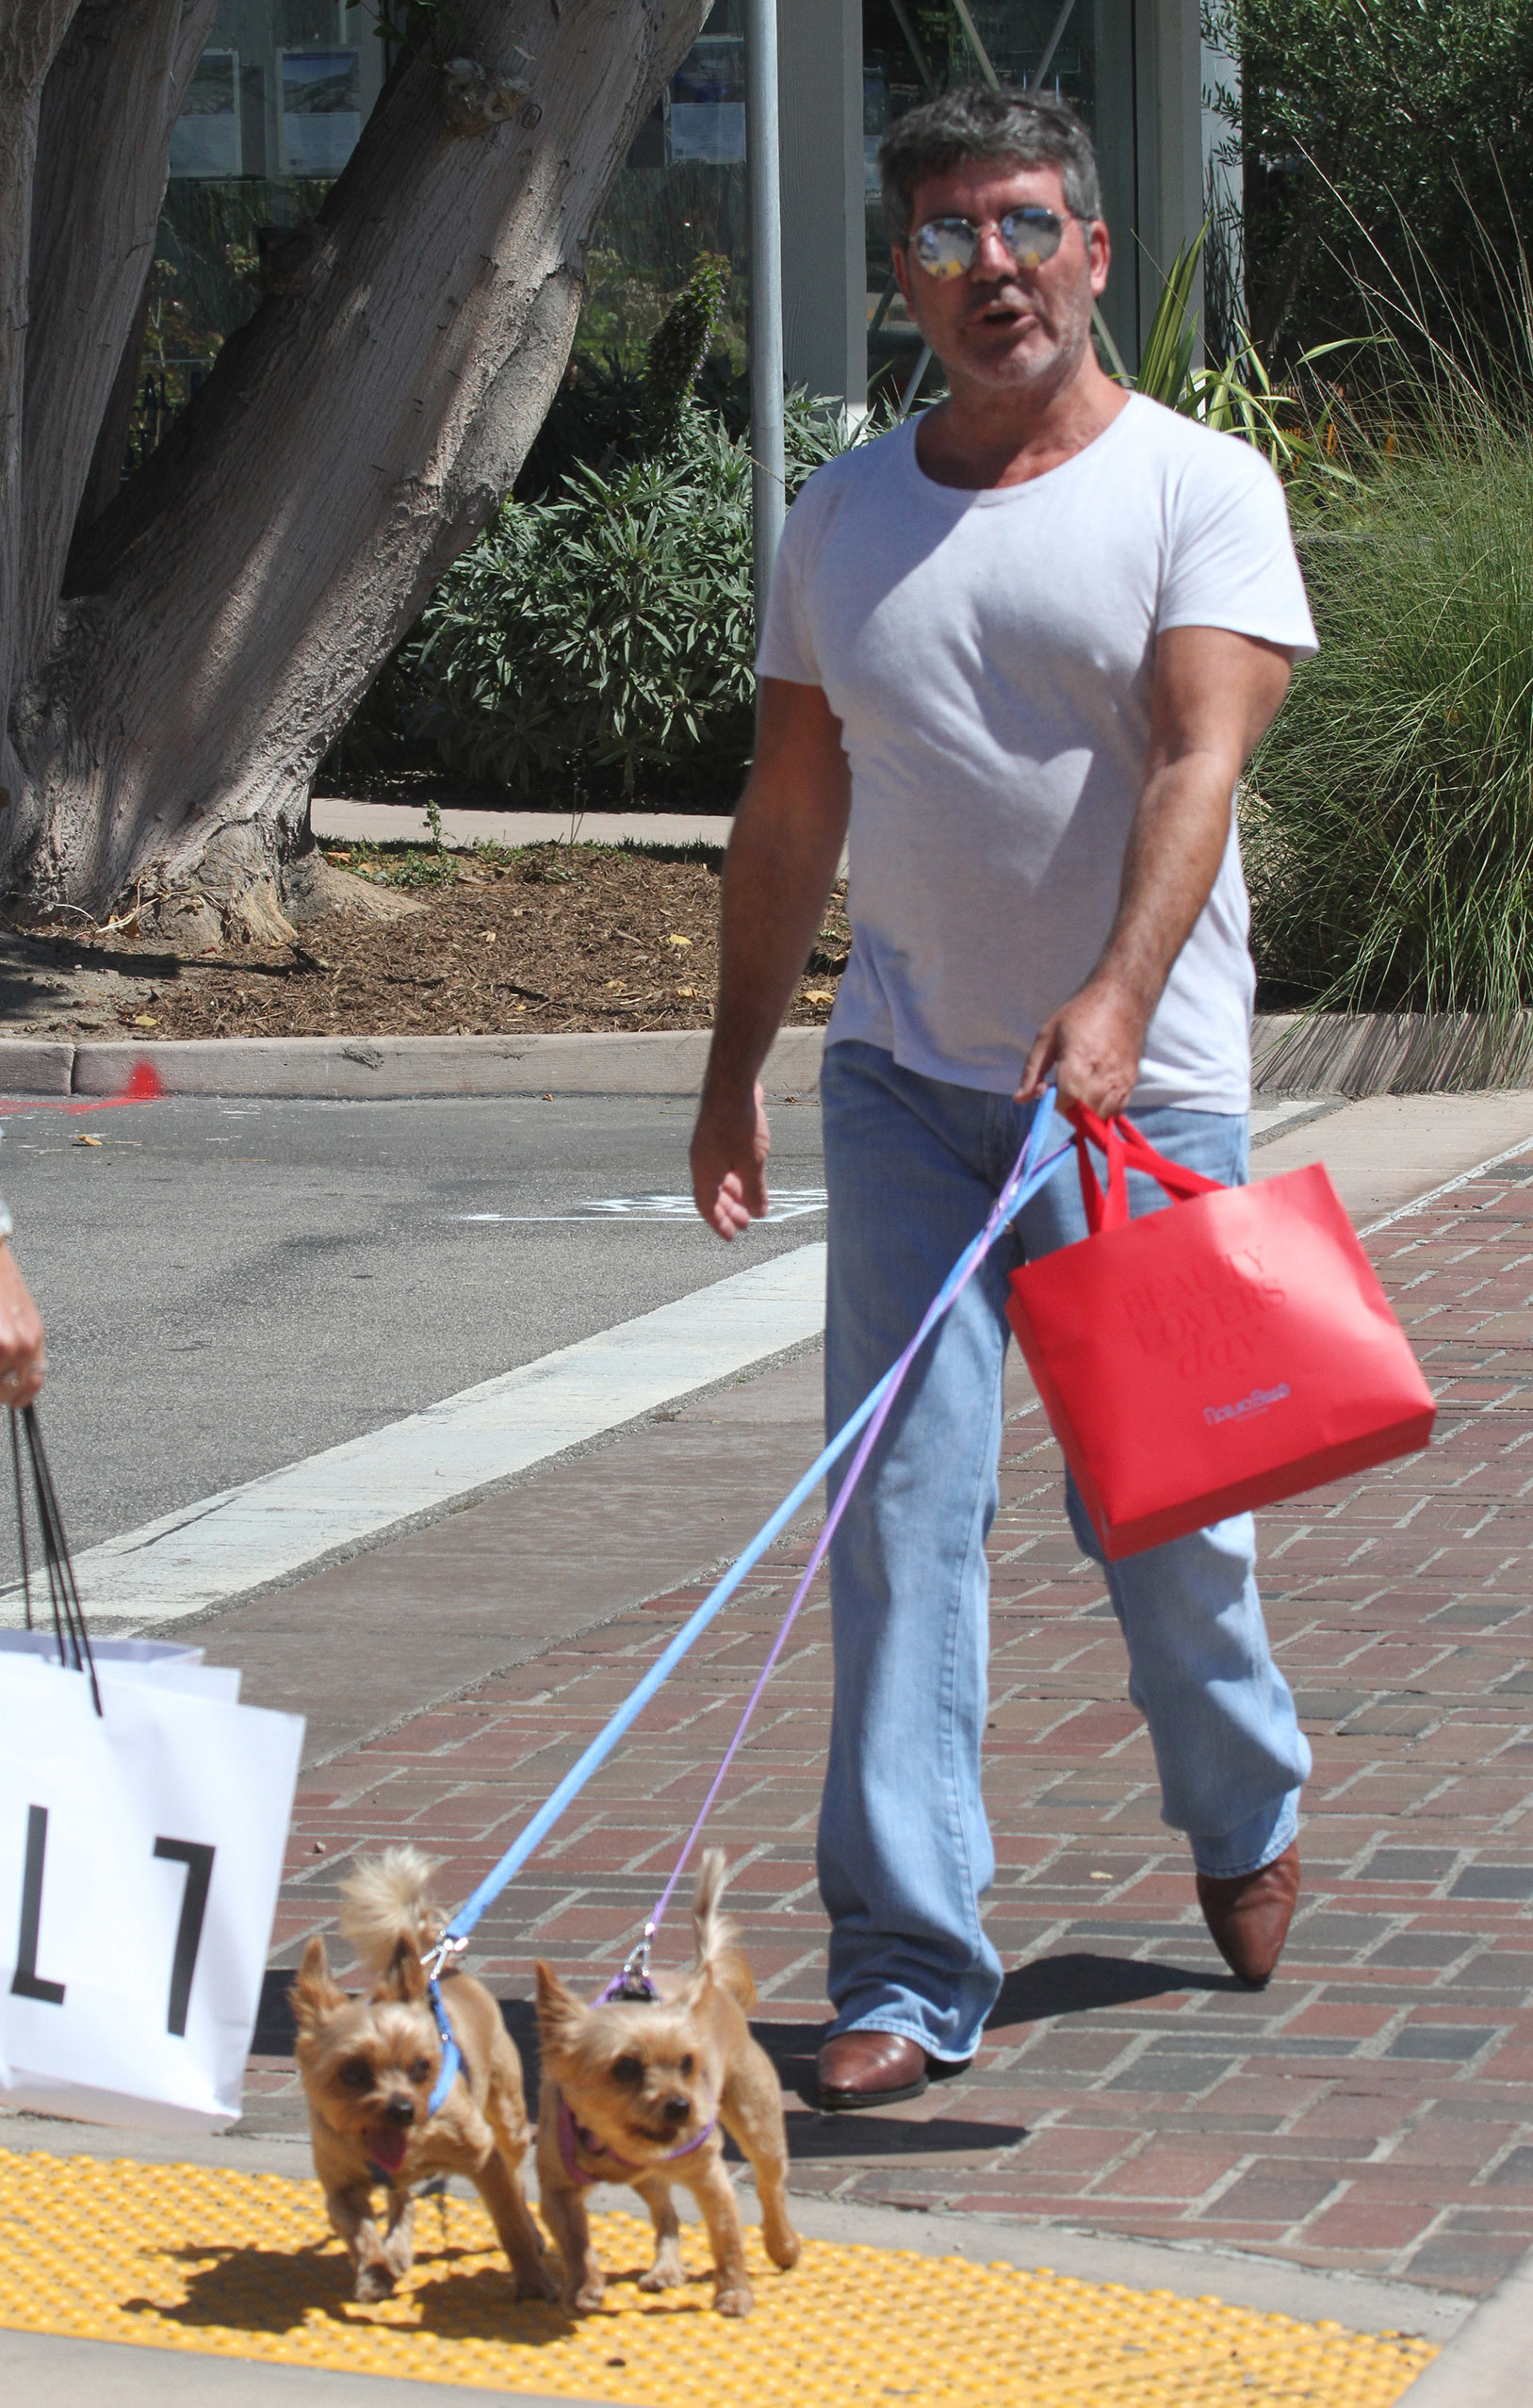 British TV mogul Simon Cowell took his dogs shopping while in Malibu, CA on June 27, 2018.